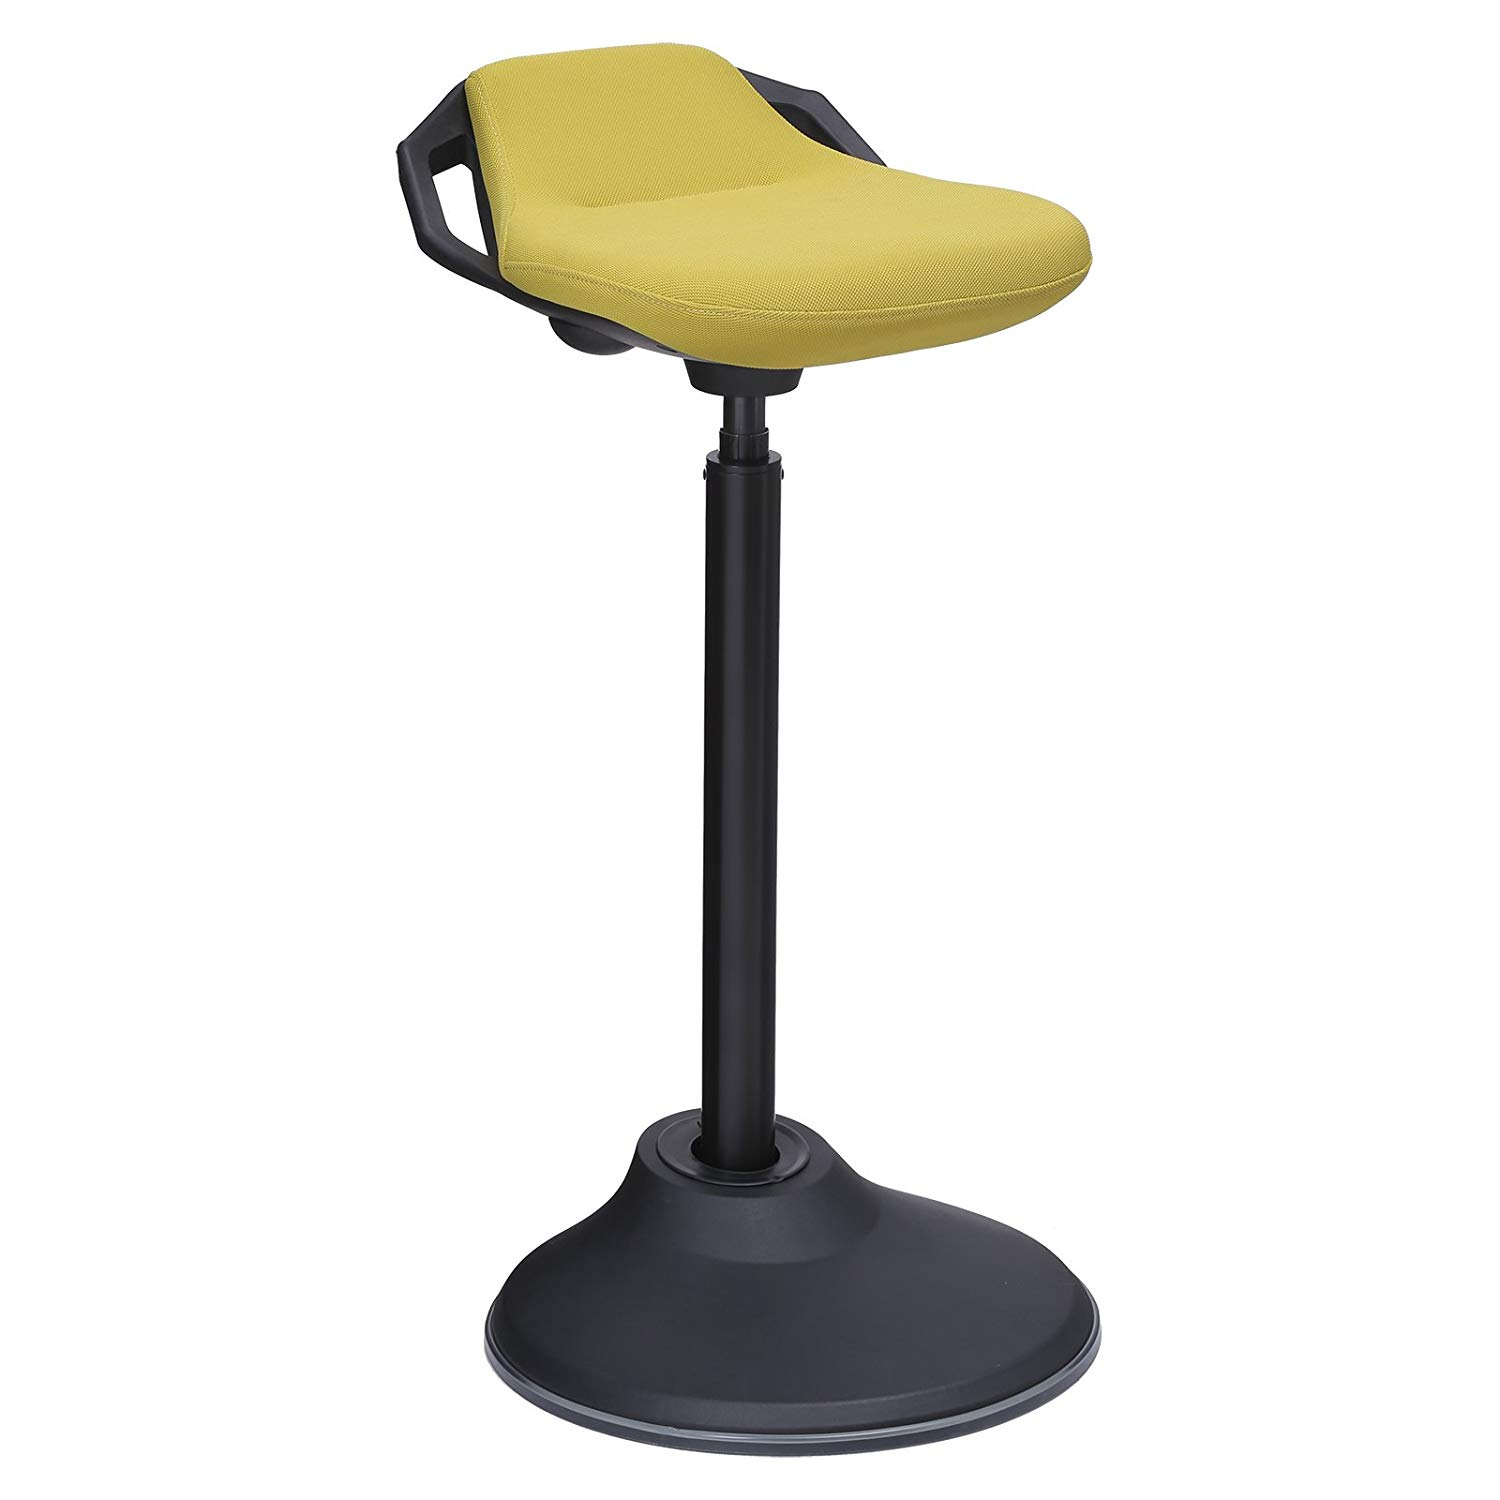 SONGMICS Adjustable Height Standing Desk Chair, 360° Swivel Ergonomic Standing Stool, Active Sitting Balance Chair for Office, Swivel Stool with Anti-Slip Bottom Pad, Fabric Yellow UOSC02GN